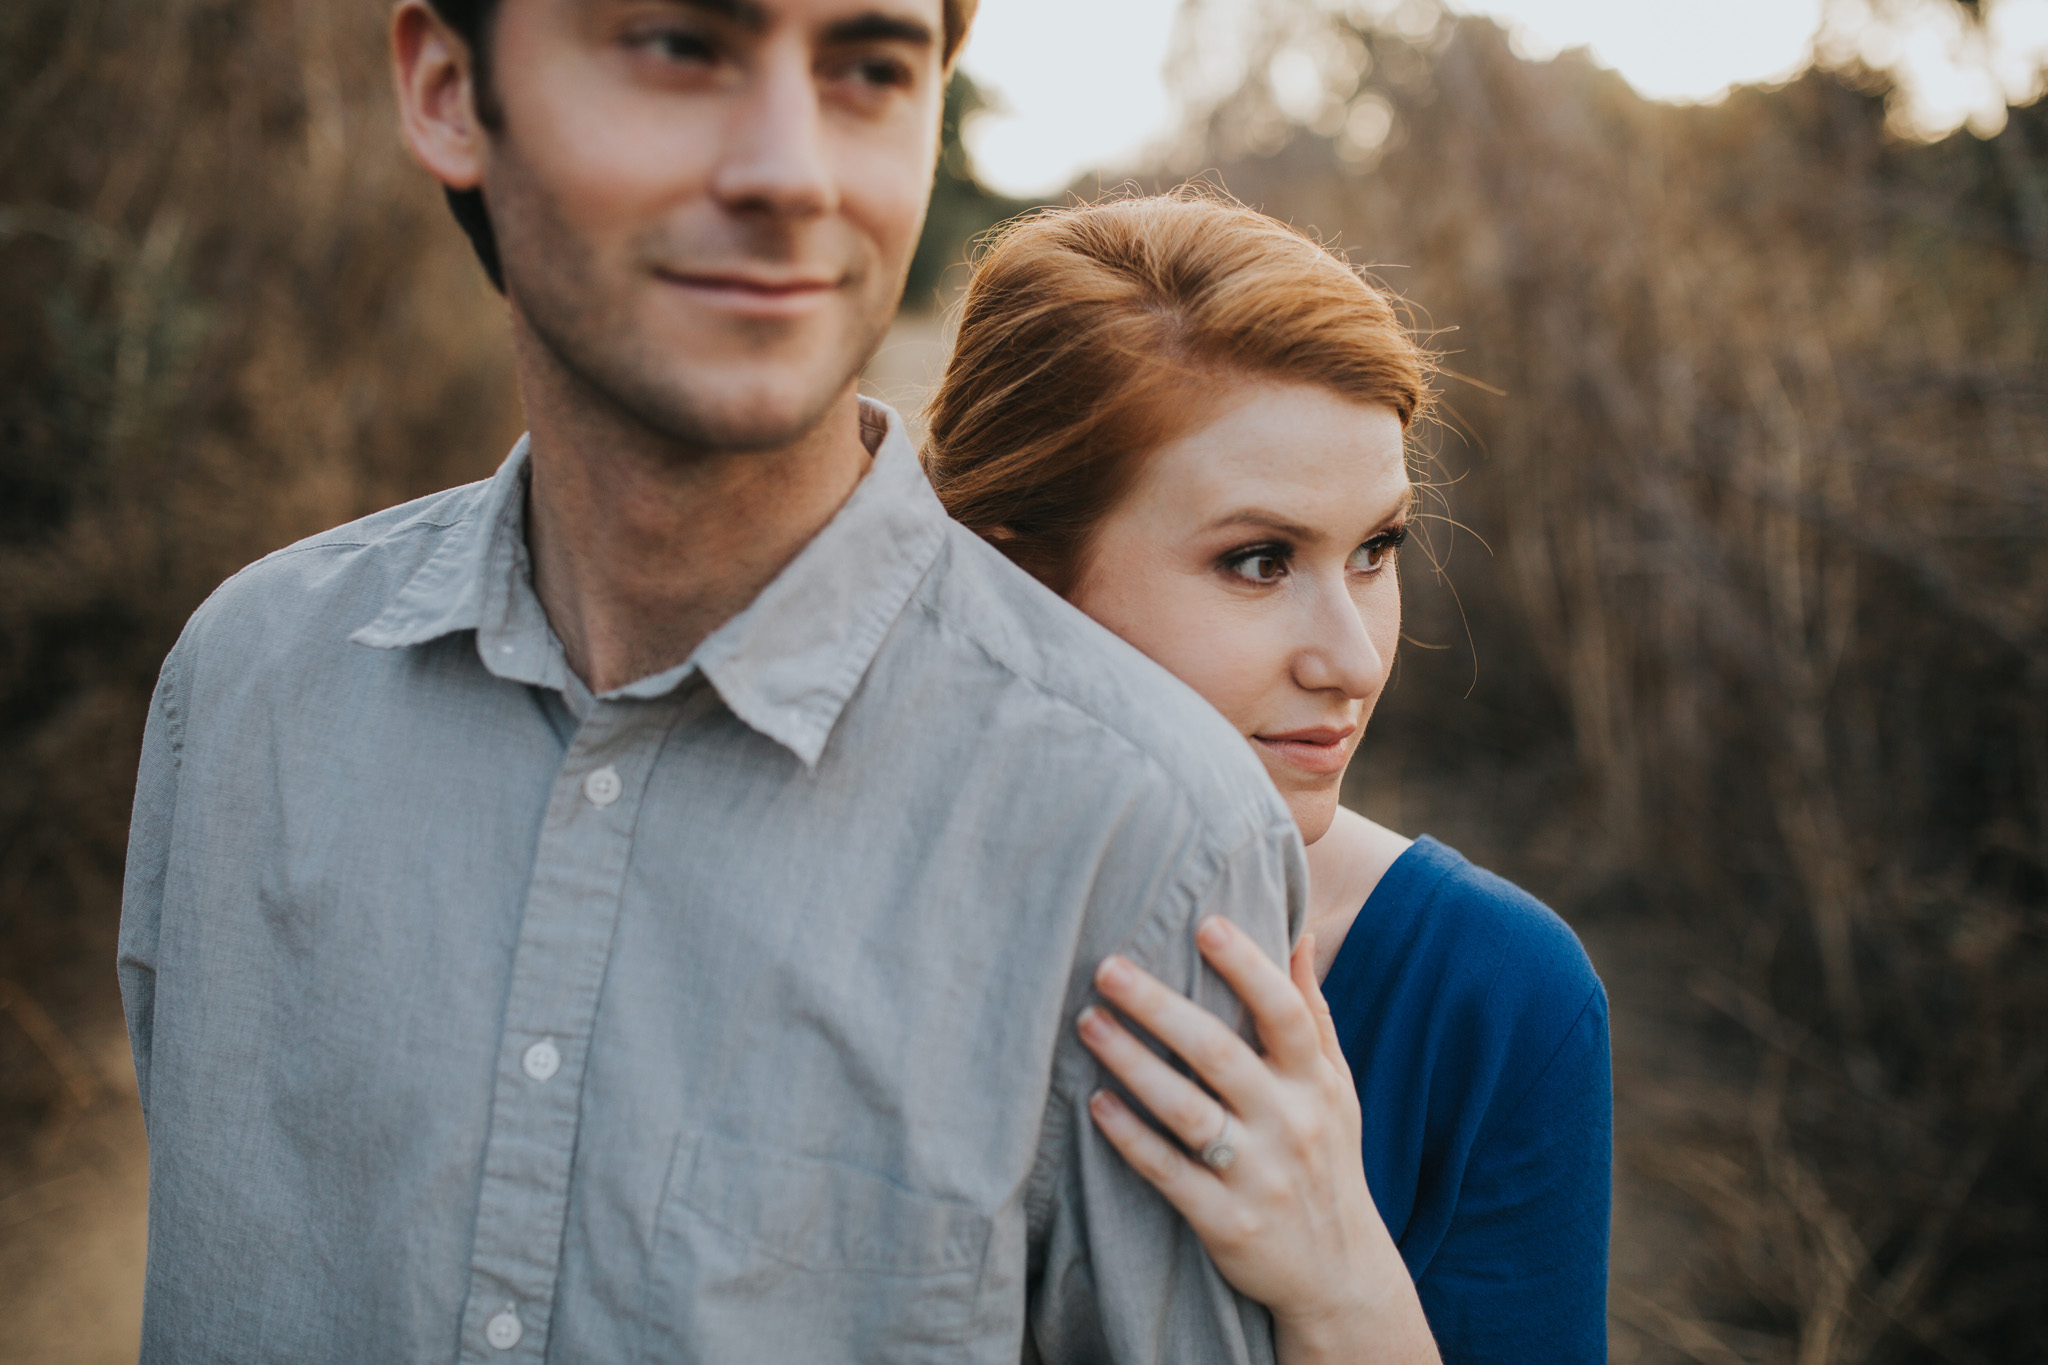 carbon_canyon_engagement_session_08.jpg